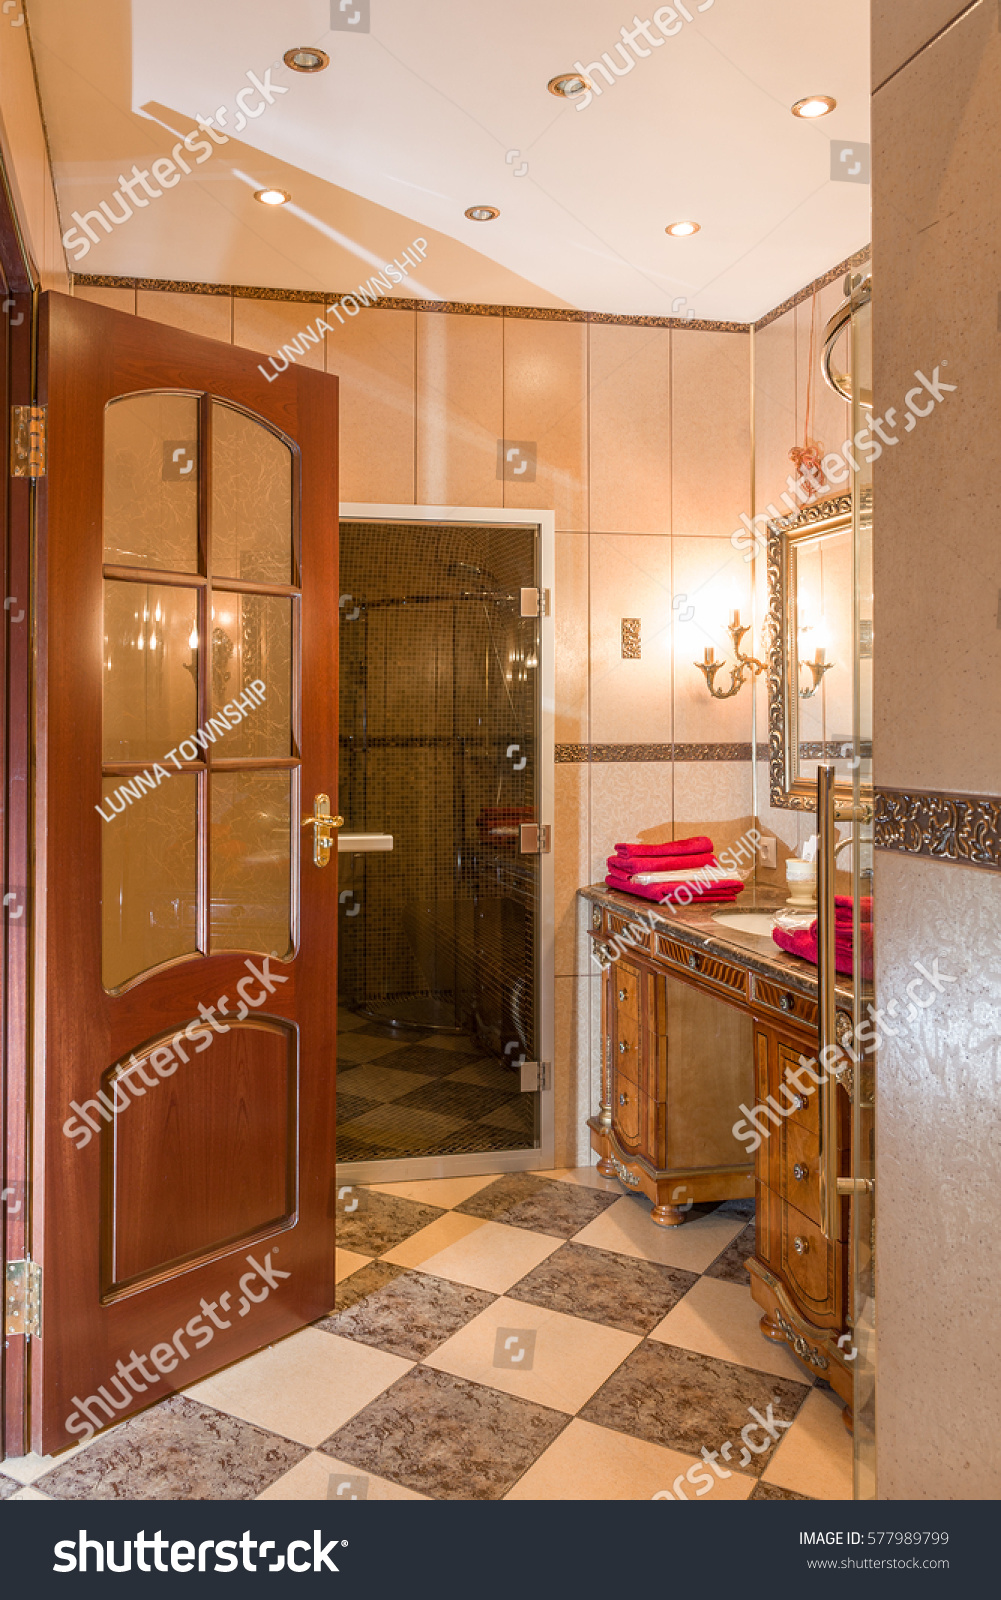 Moscow russian federation circa february 2017 stock photo 577989799 moscow russian federation circa february 2017 hotel interior bathroom the dailygadgetfo Images